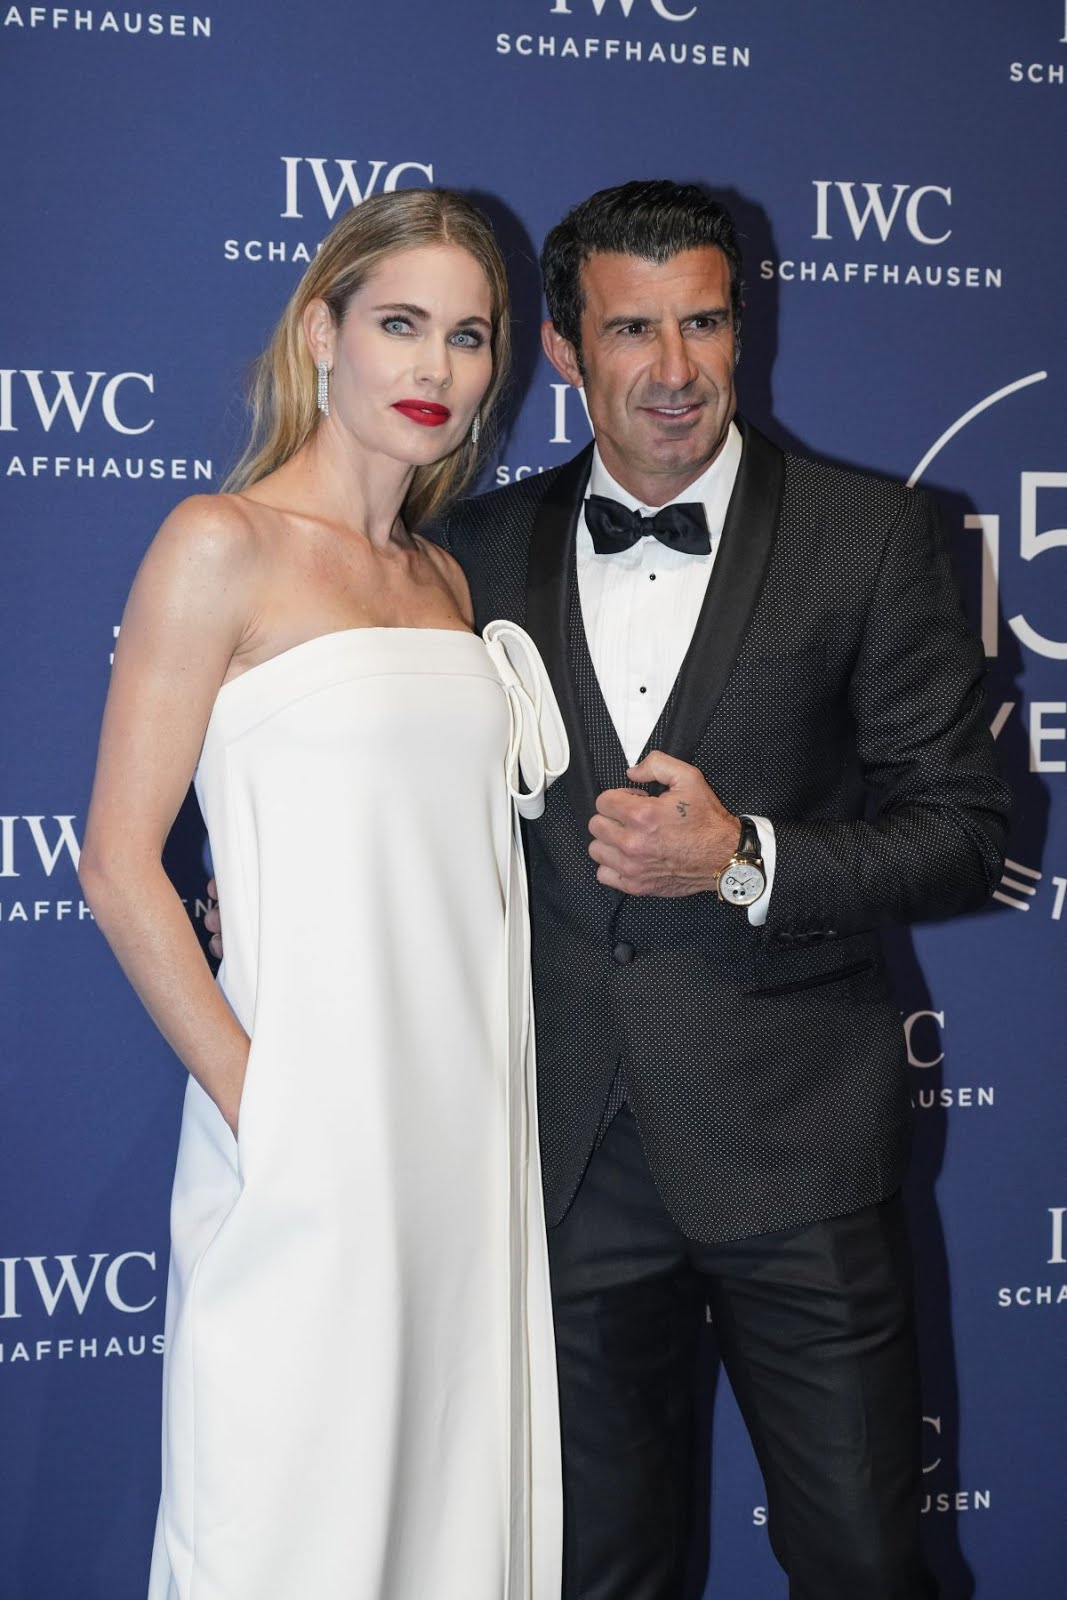 Swedish model Helen Svedin At IWC Schaffhausen Gala At Sihh 2018 in Geneva 2018